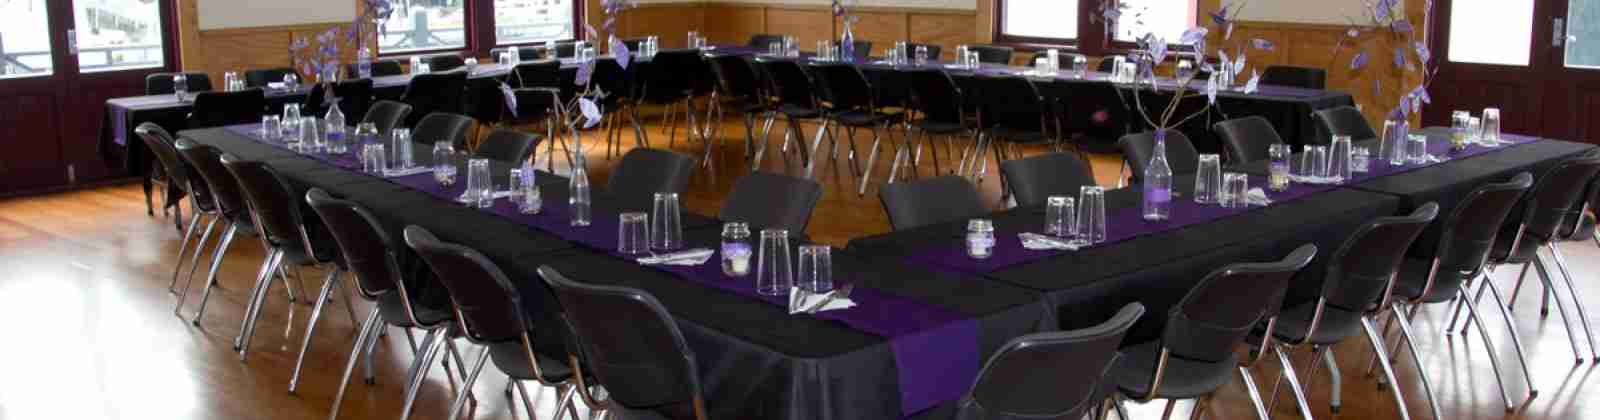 BE Wellington Rowing Club table chairs wooden floor purple decor